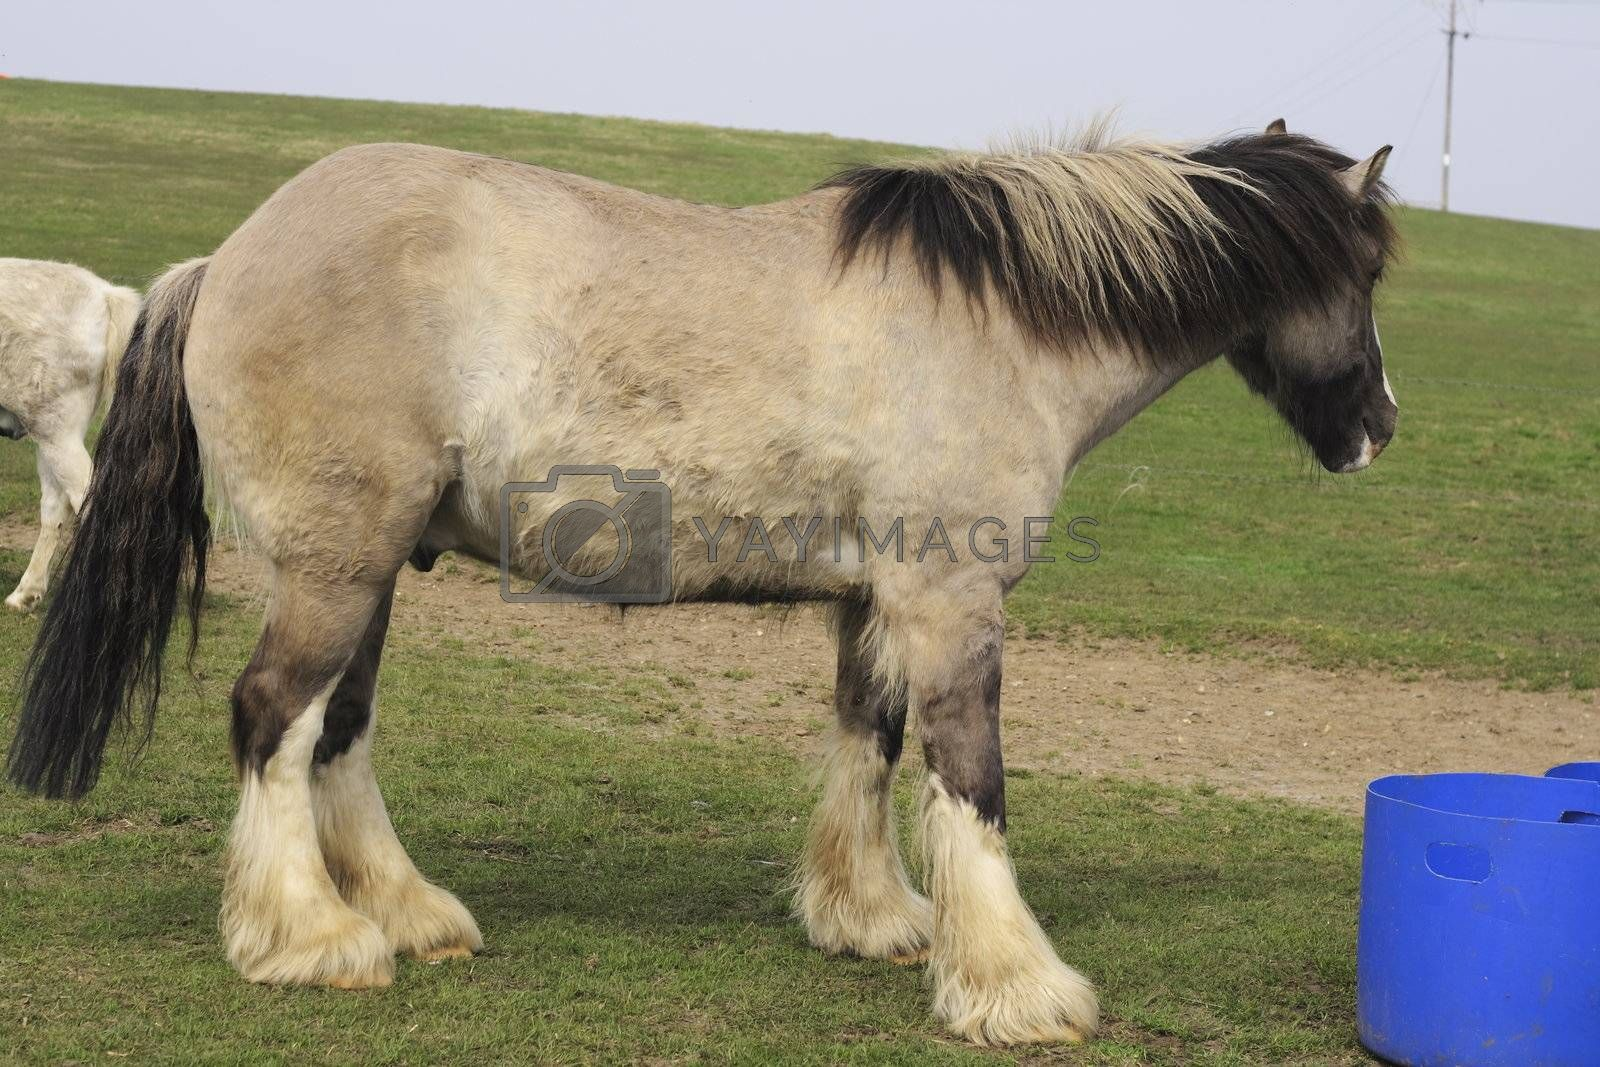 large horse standing in a field with food bucket